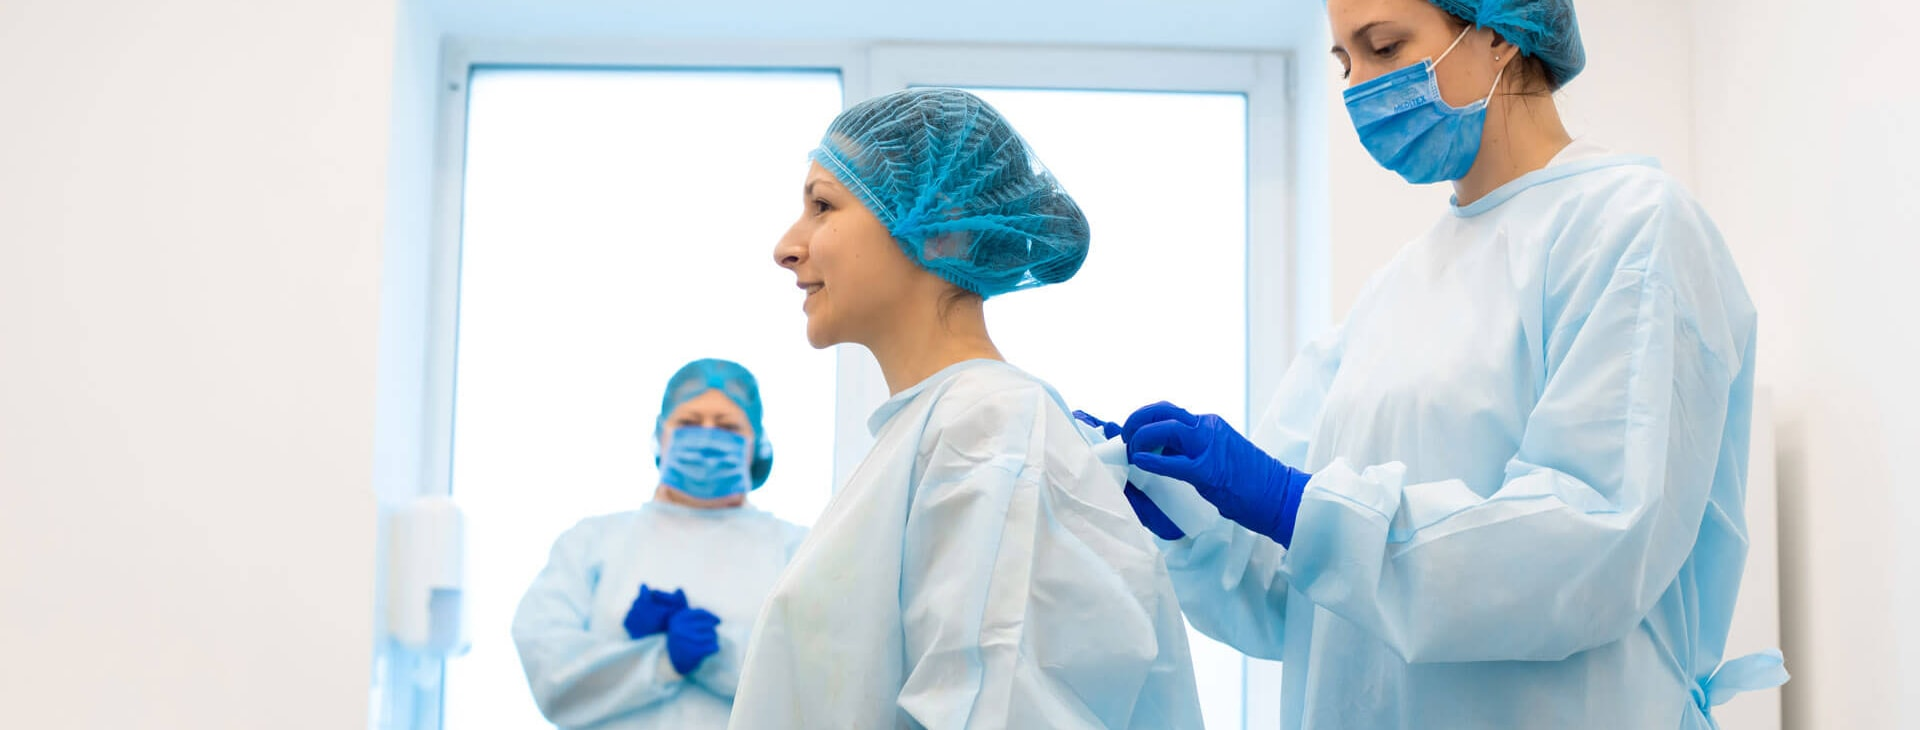 Medical industry shown with personnel in scrubs, gloves